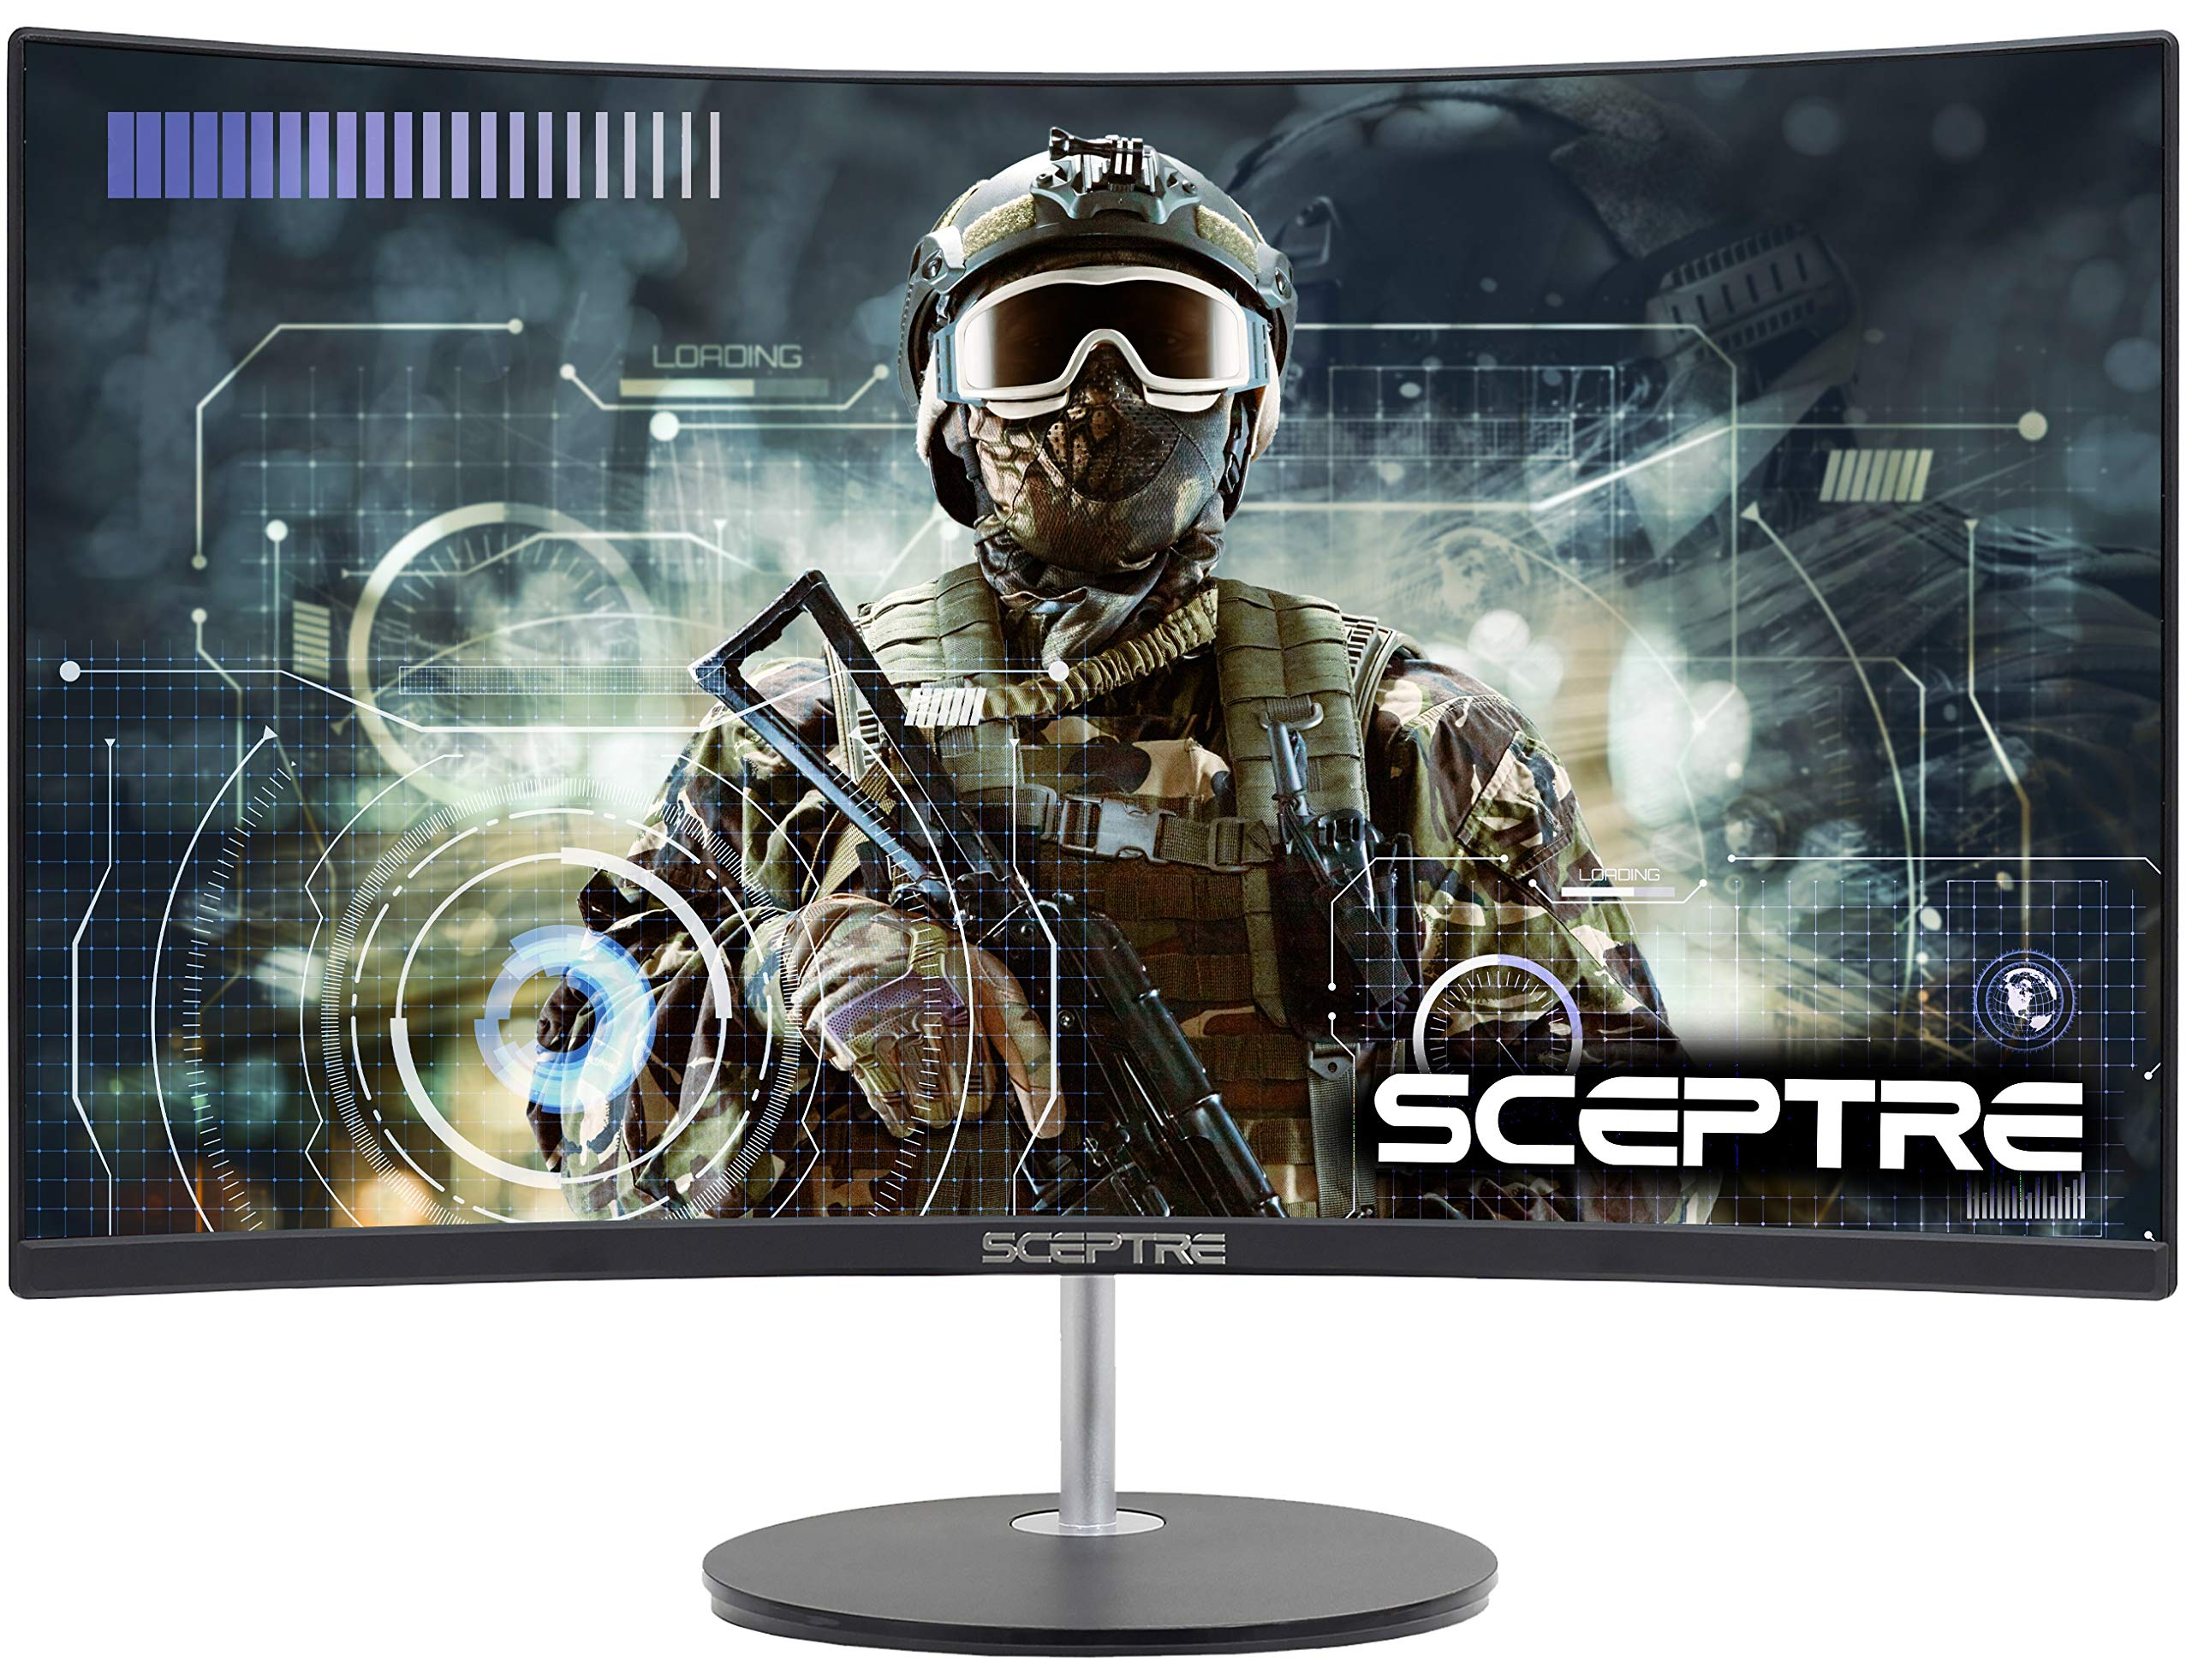 Sceptre 24'' Curved 75Hz Gaming LED Monitor Full HD 1080P HDMI VGA Speakers, VESA Wall Mount Ready Metal Black 2019 (C248W-1920RN) by Sceptre